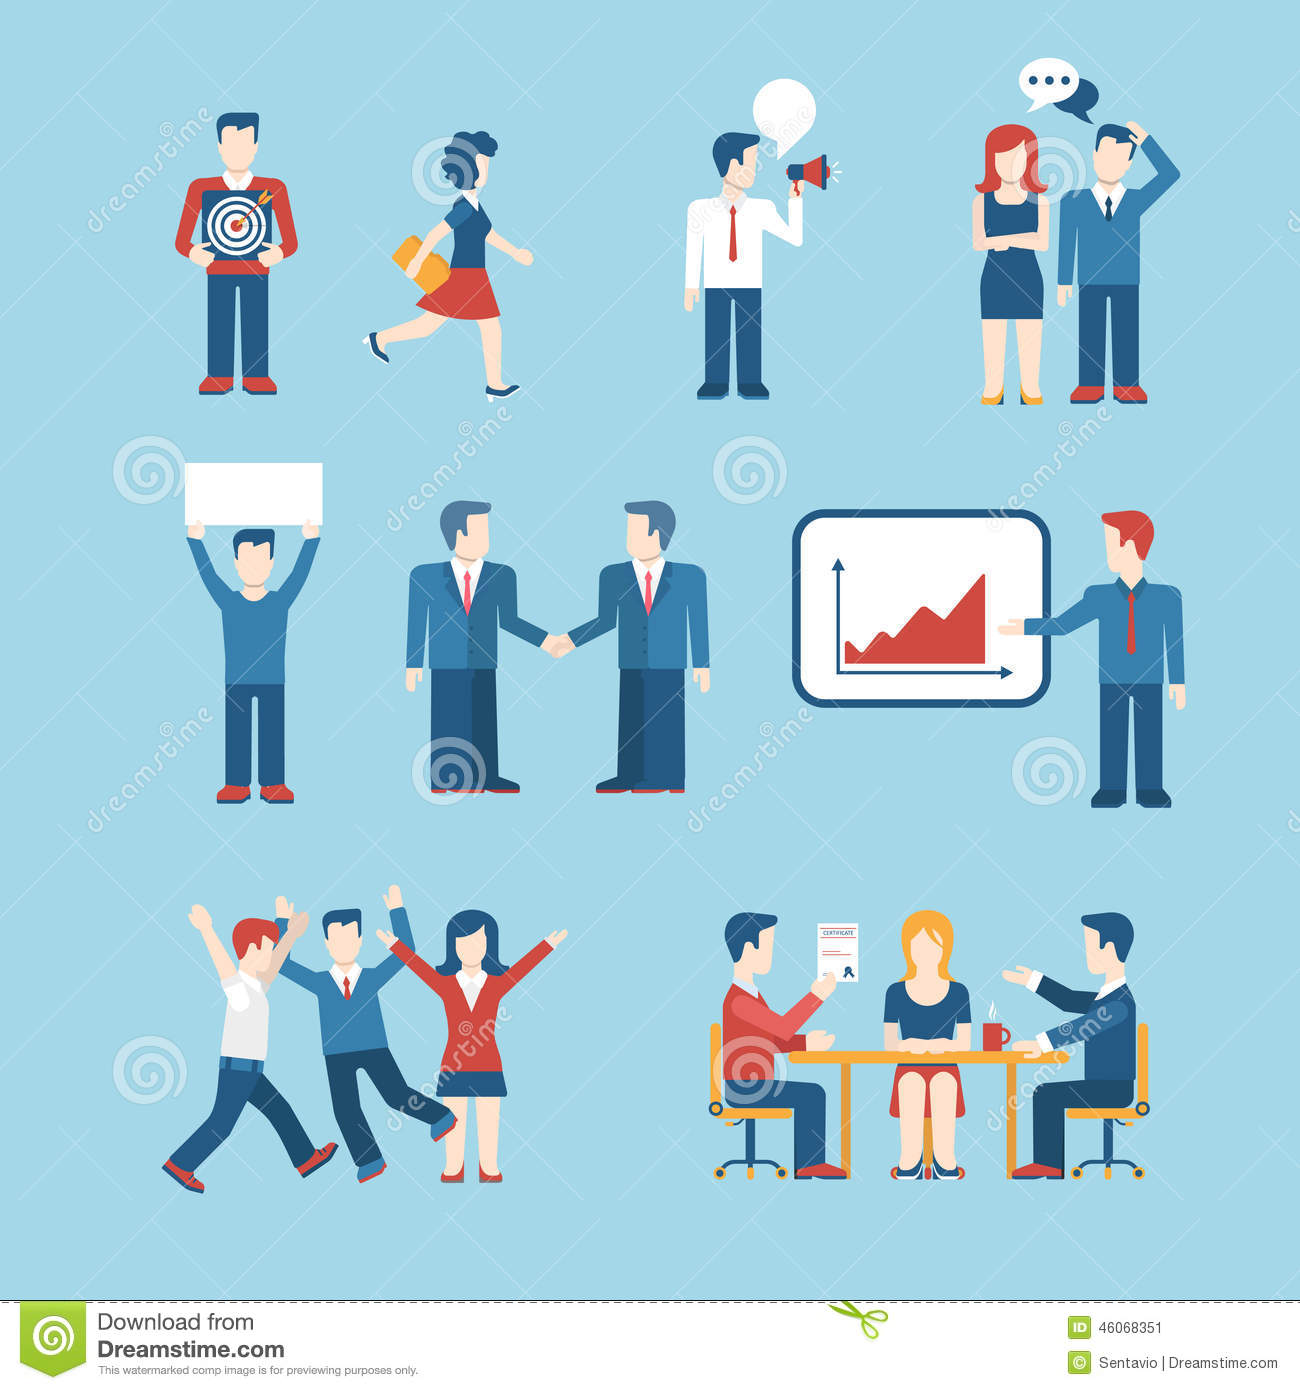 People Icons Business Man Situation Web Template Icon Set